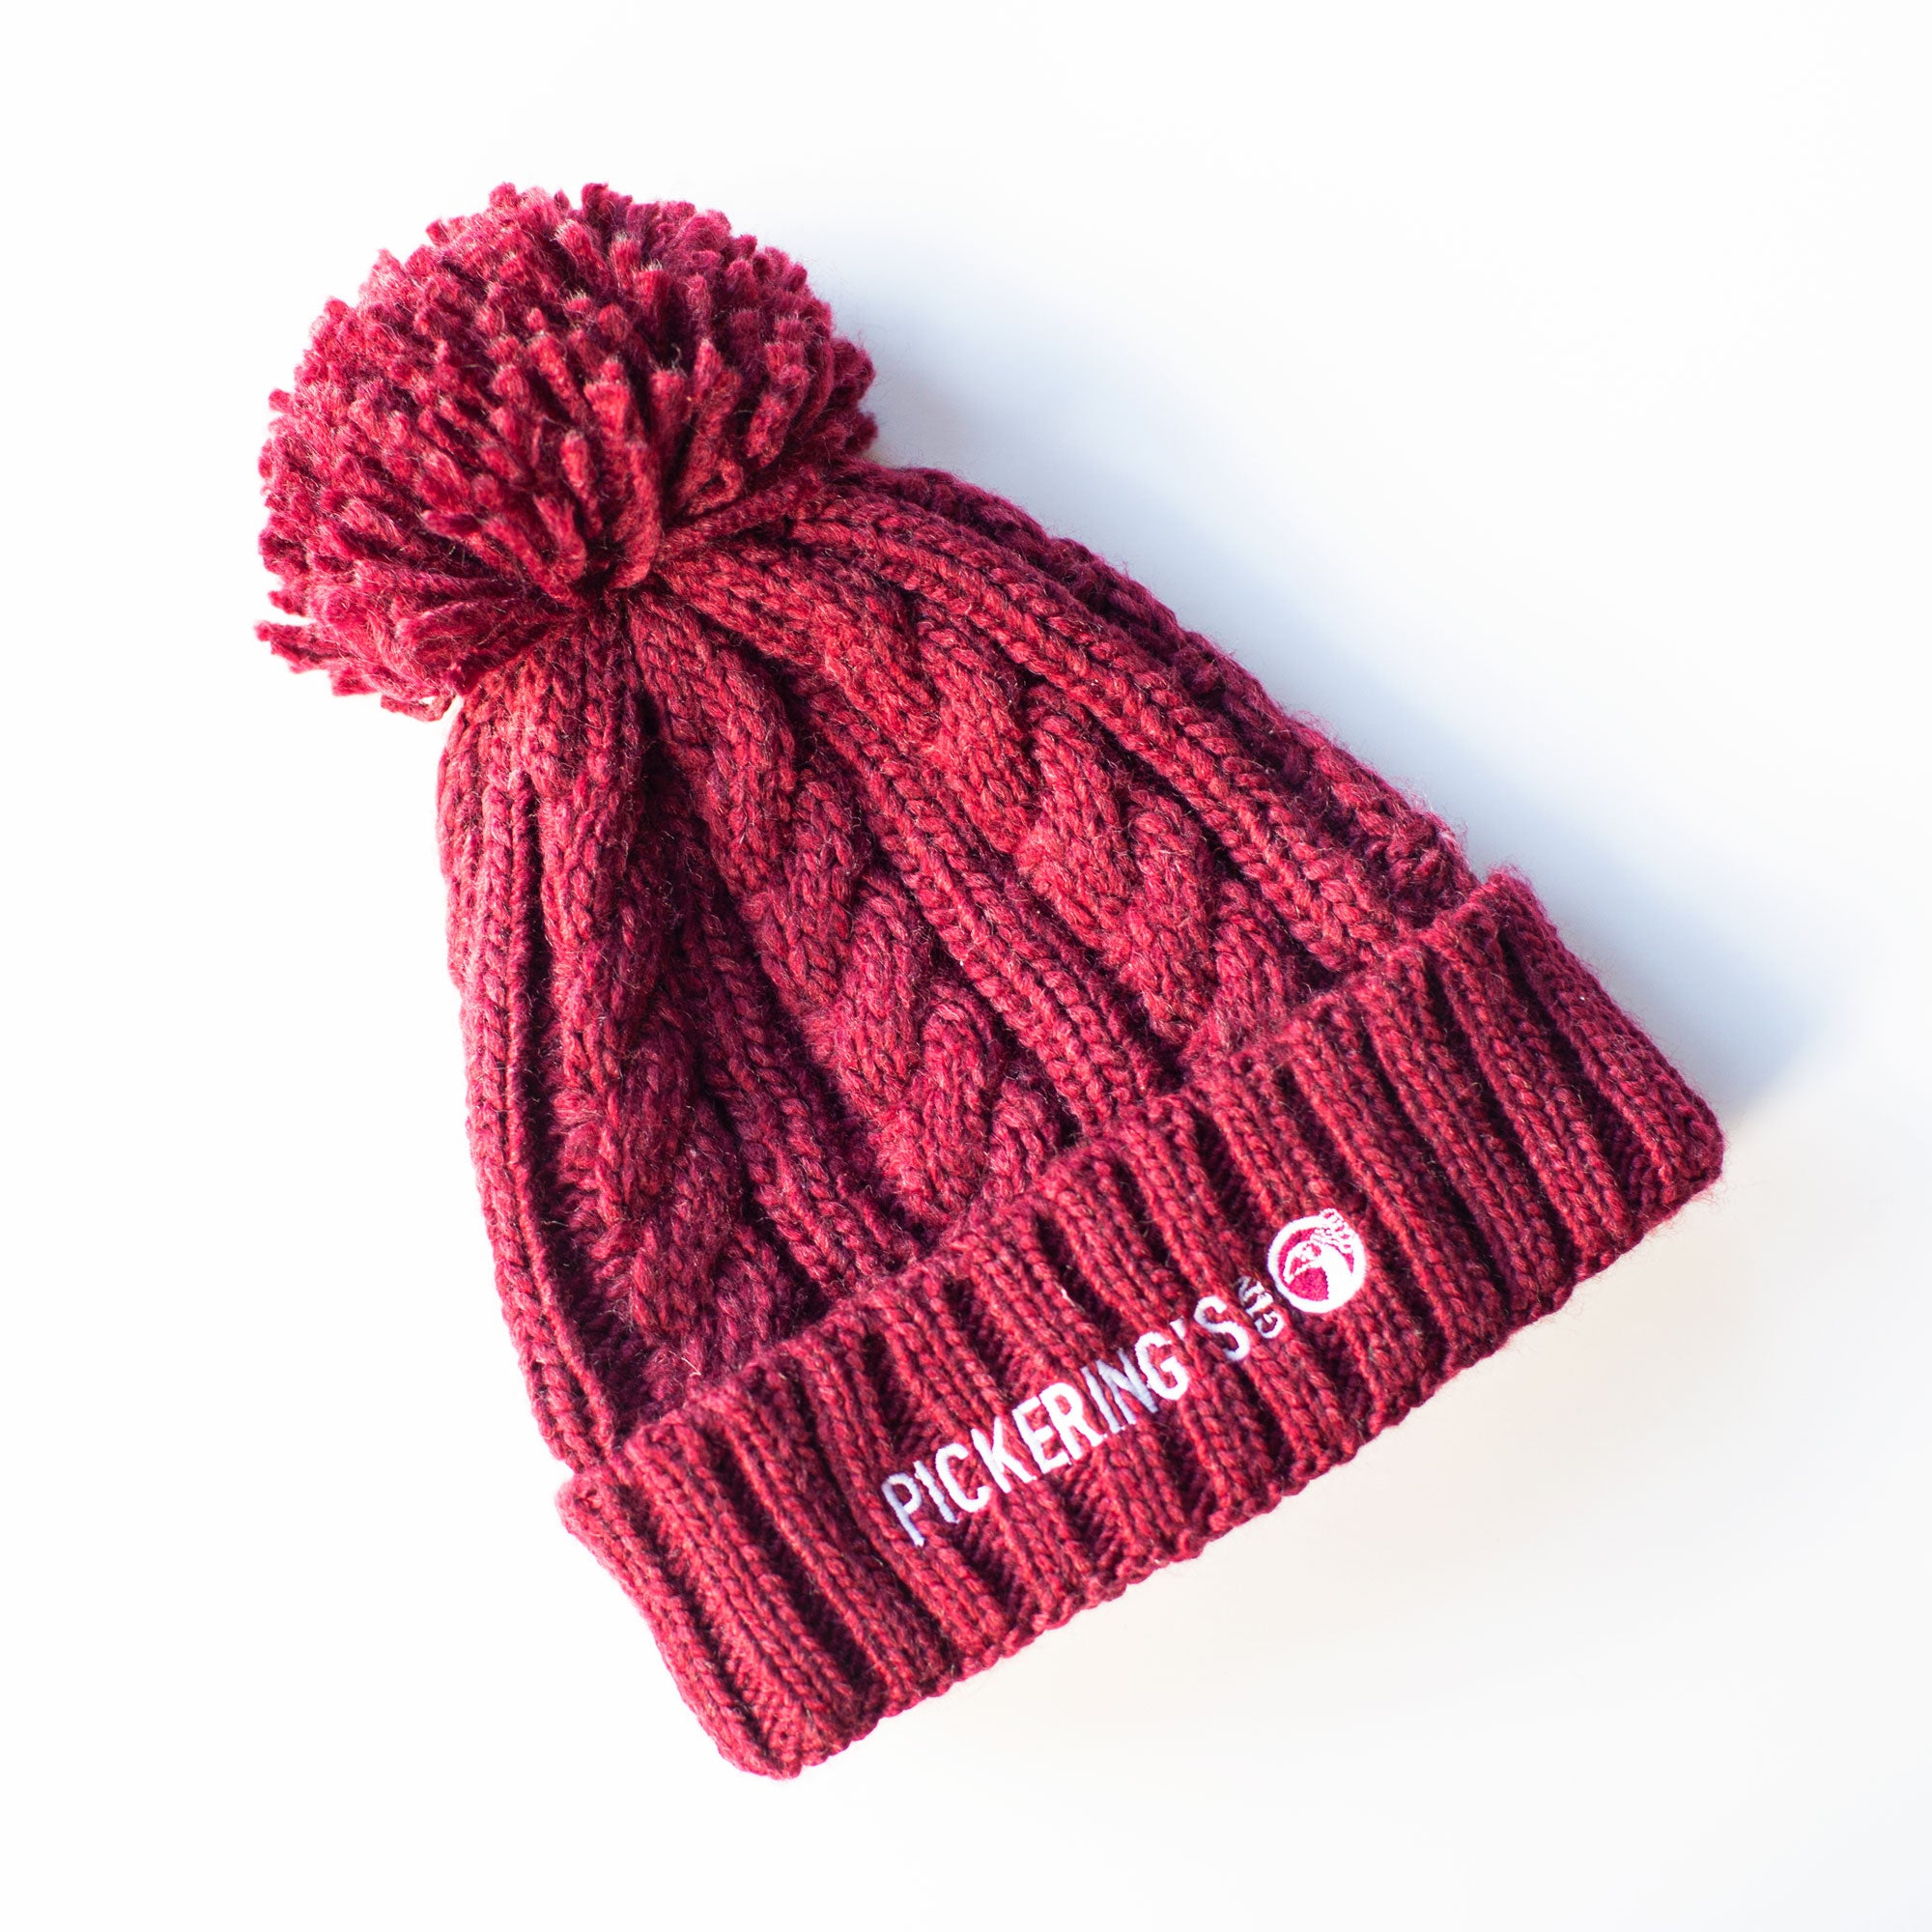 Burgundy Cable Knit Bobble Hat